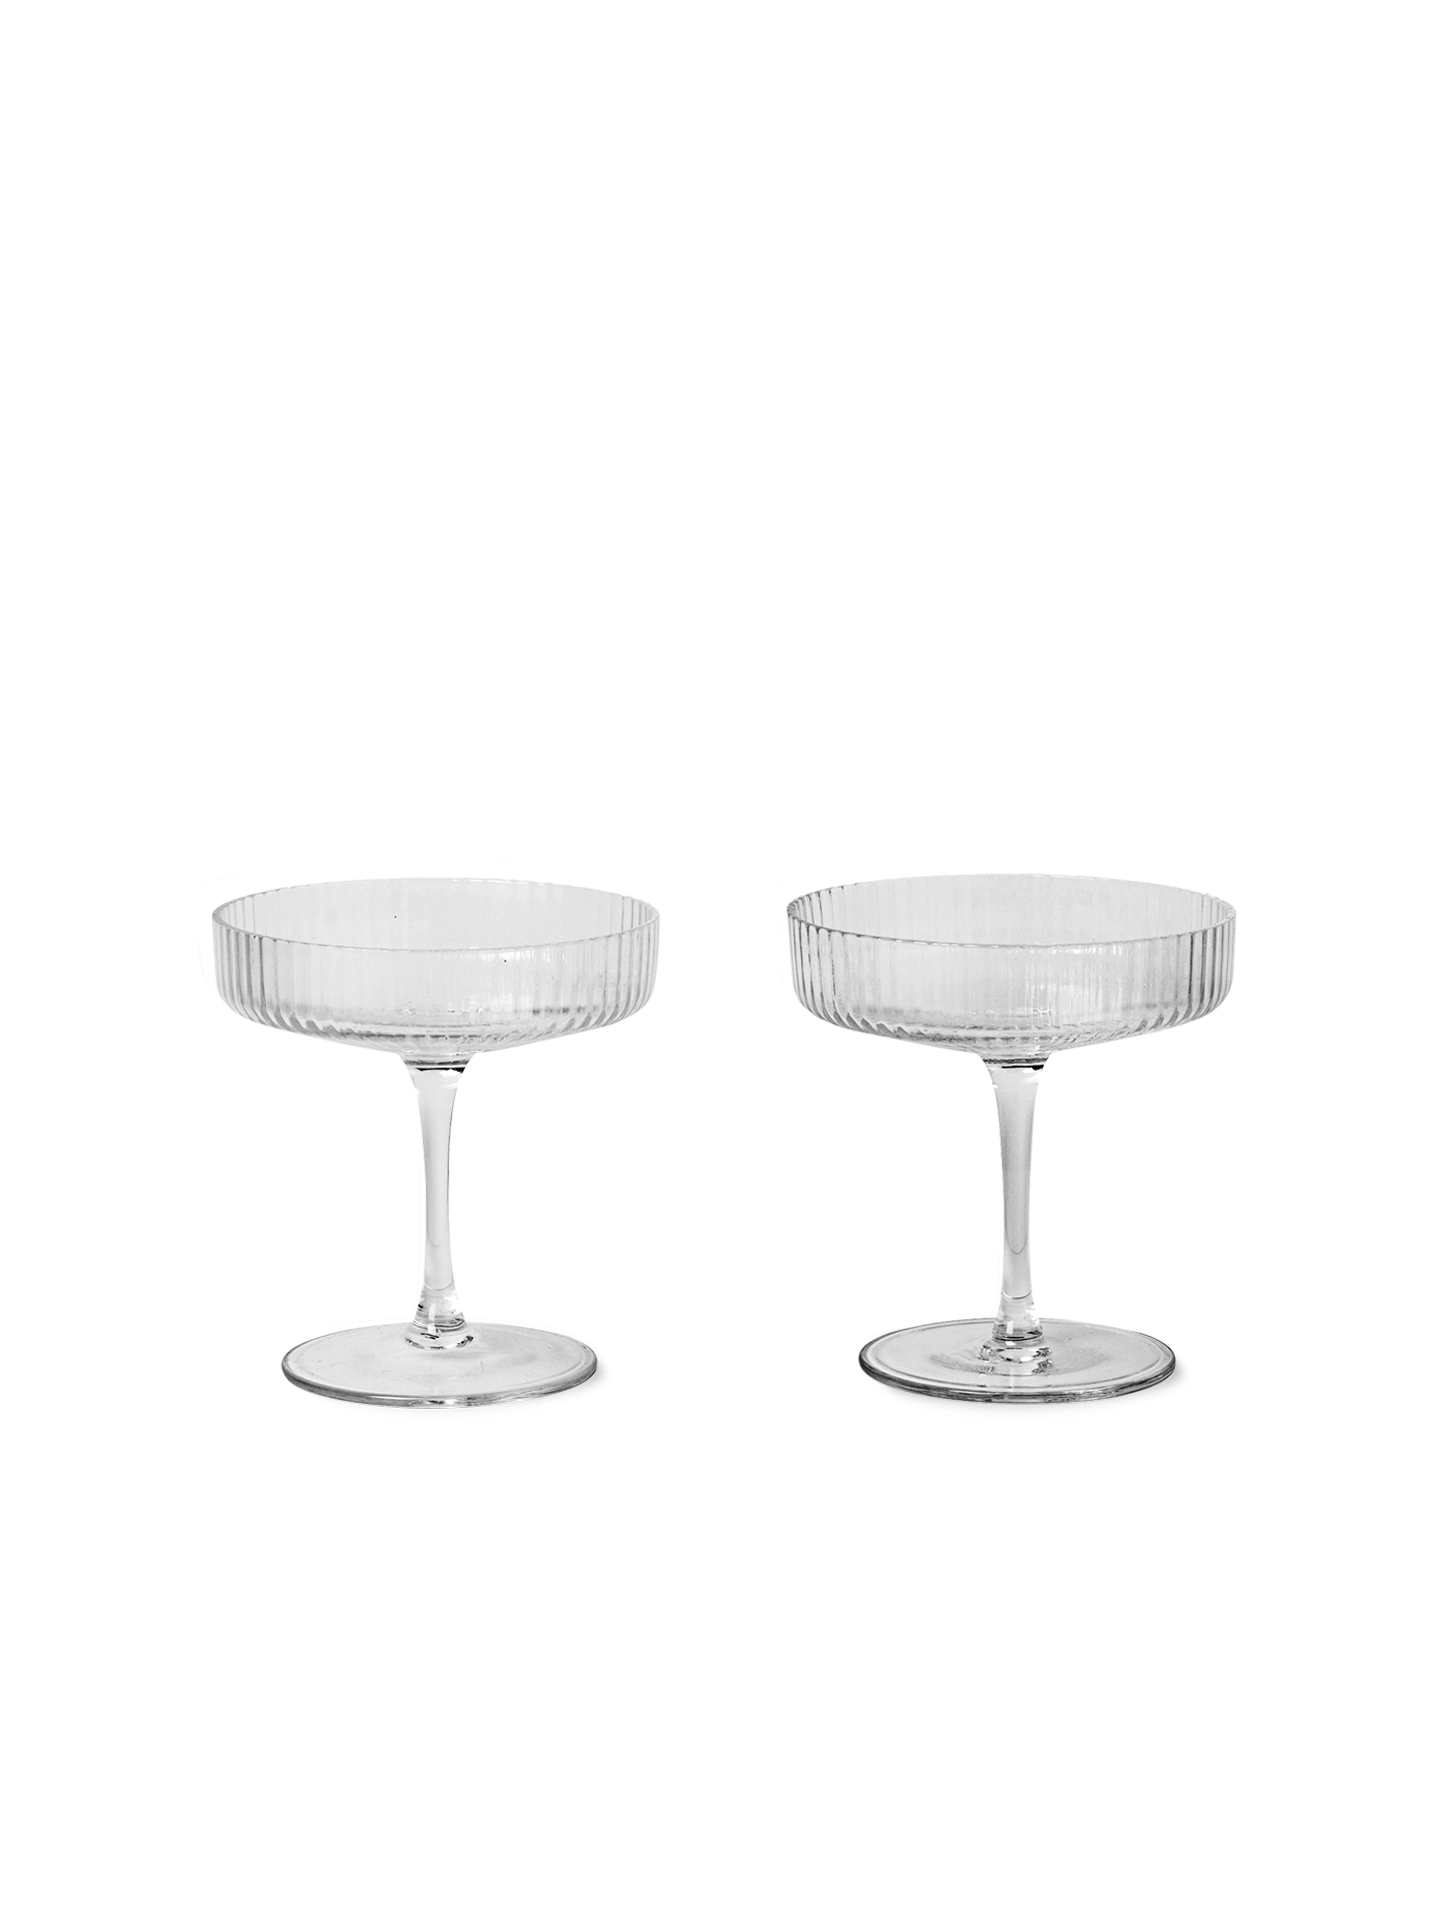 FERM LIVING RIPPLE CHAMPAGNE SAUCER CLEAR - SET OF 2